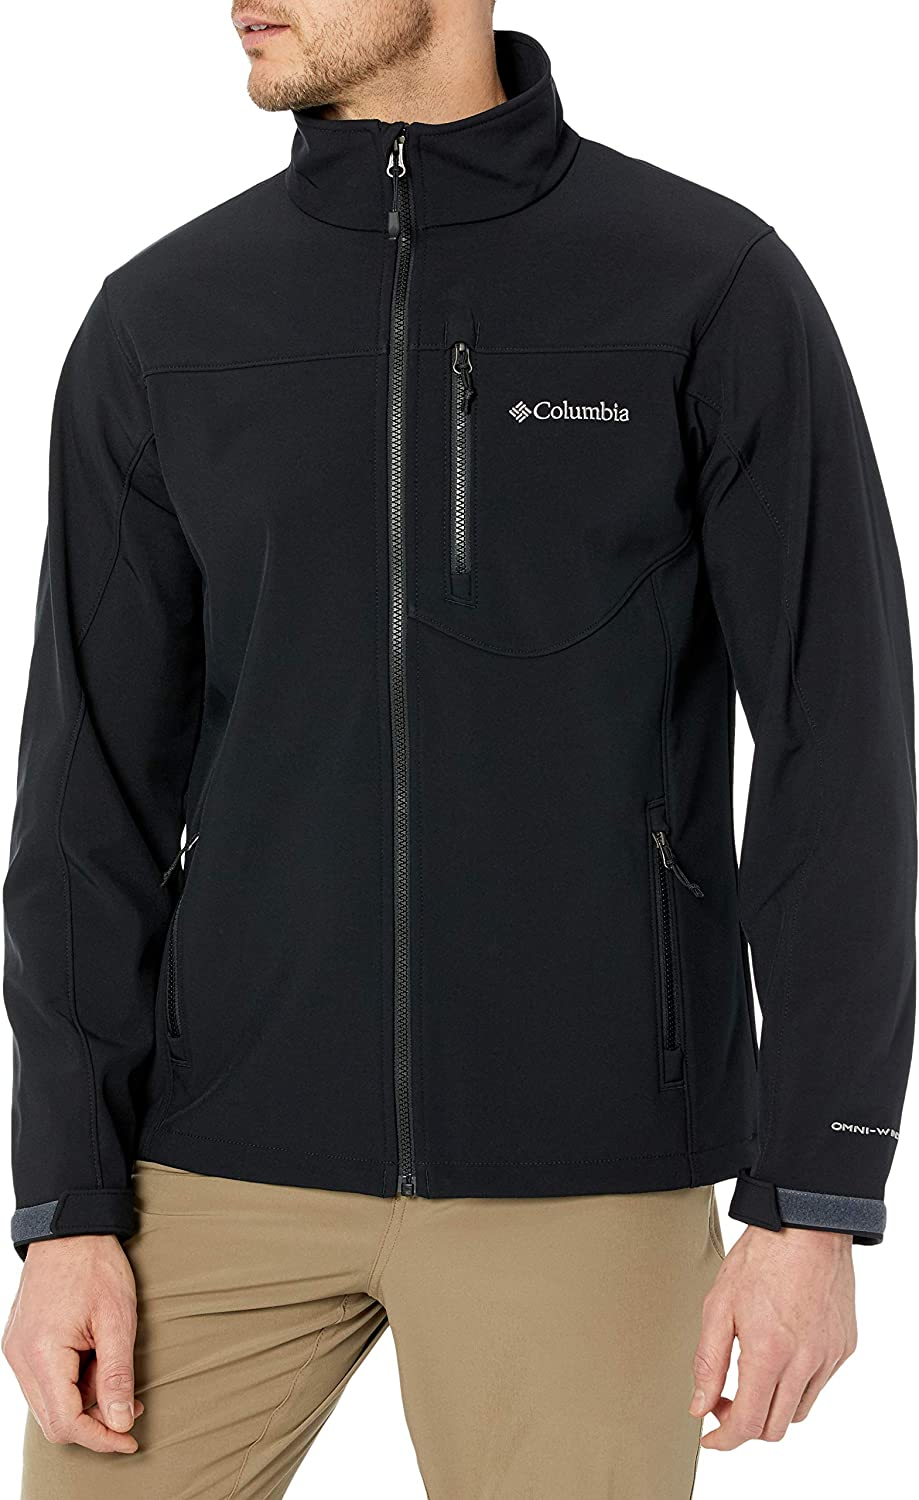 Columbia Men's Prime Peak Jacket Windproof Softshell Fixed price for Quantity limited sale